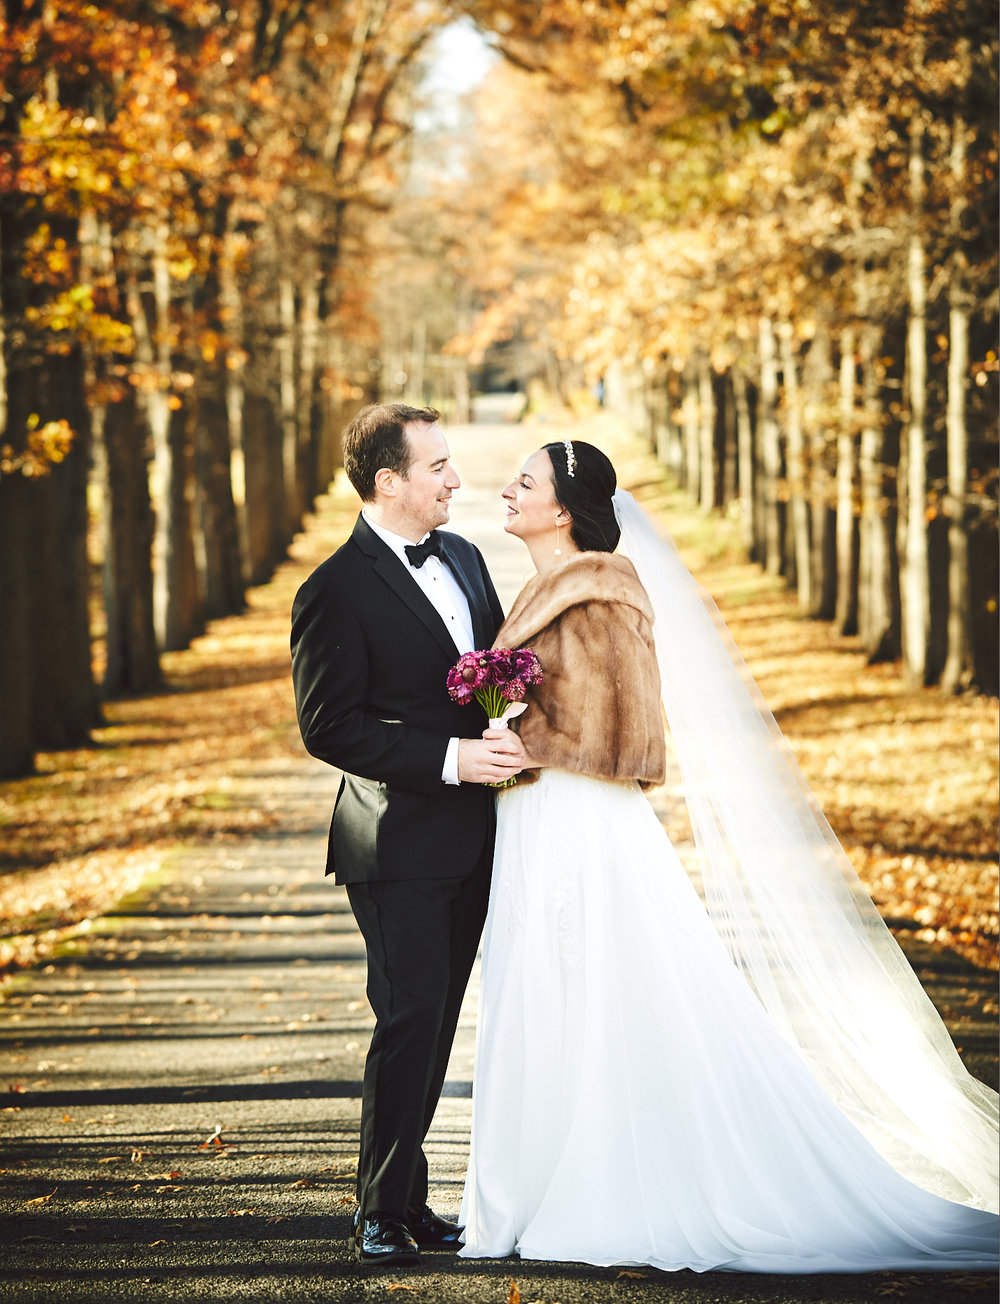 181110_ArrowParkFallWeddingPhotography_NYWeddingPhotographer_By_BriJohnsonWeddings_0047.jpg